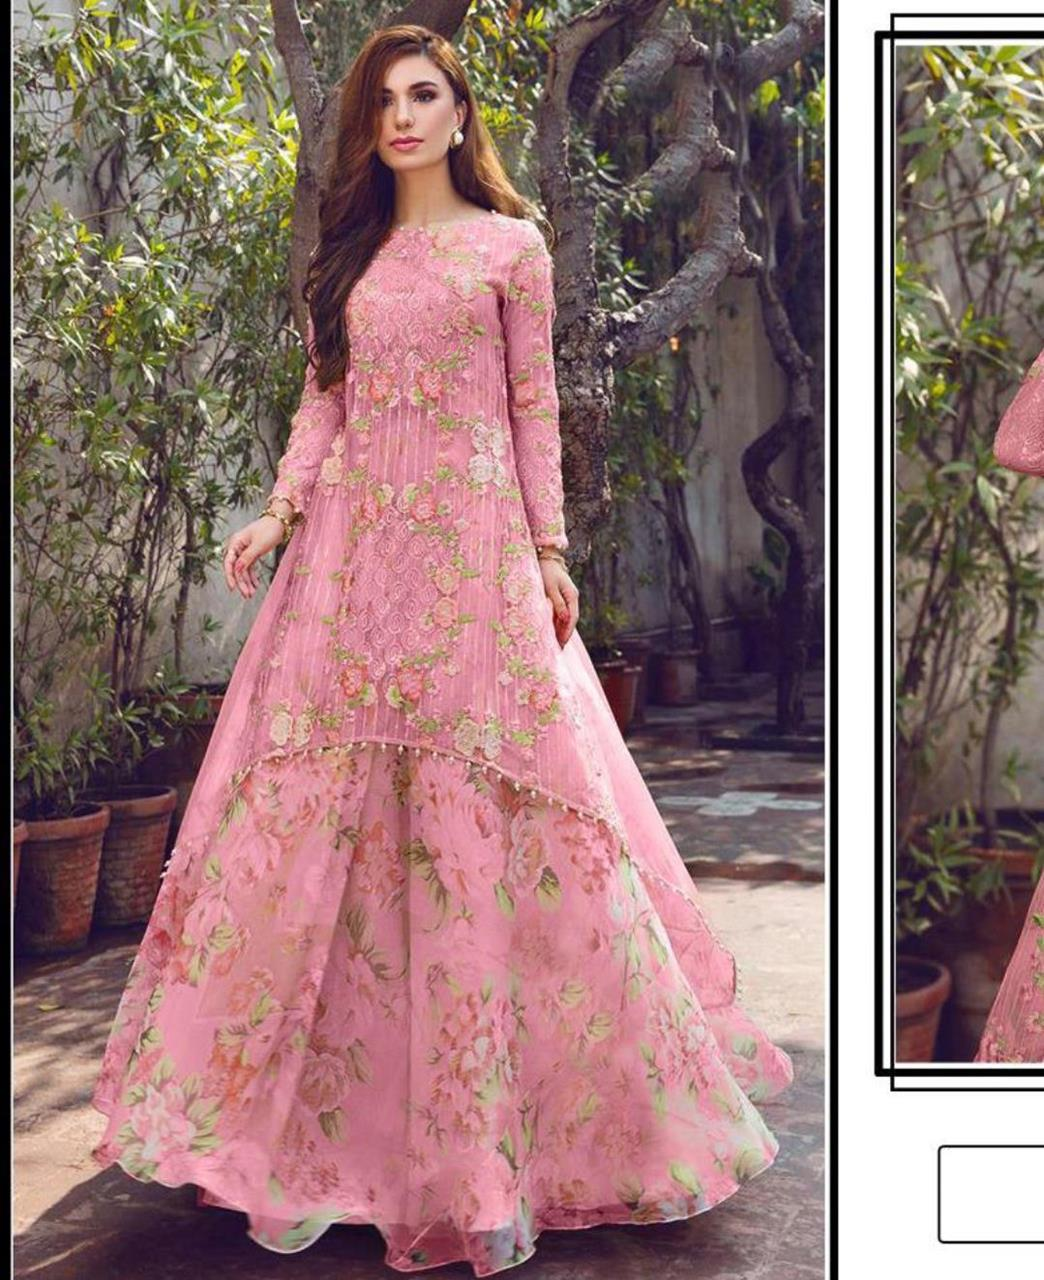 Printed Georgette Lehenga in Pink